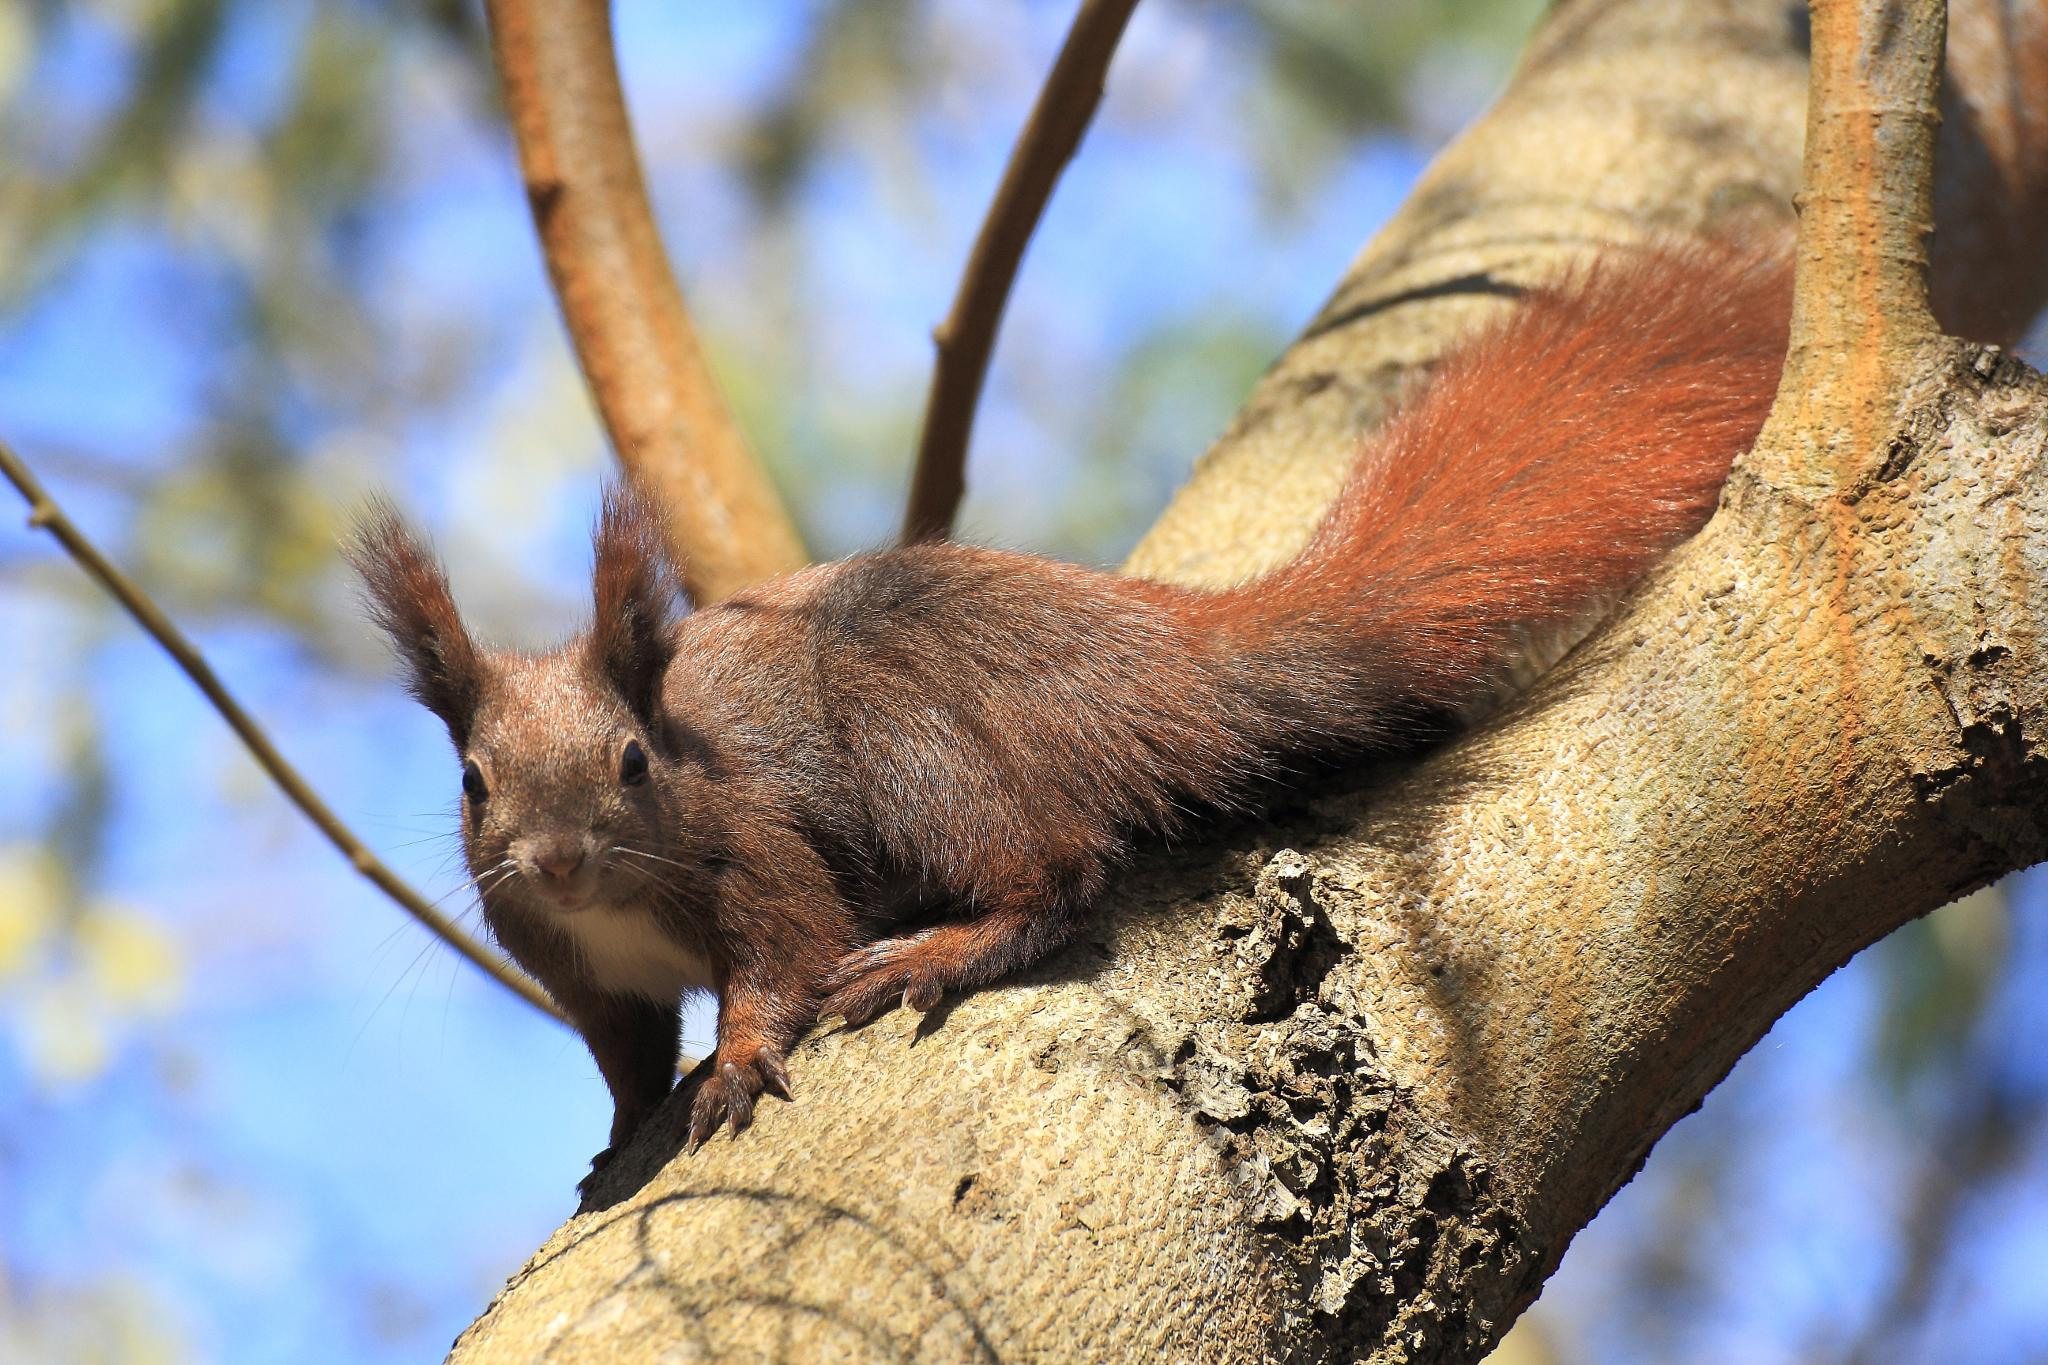 red squirrel by Ralf Muhl